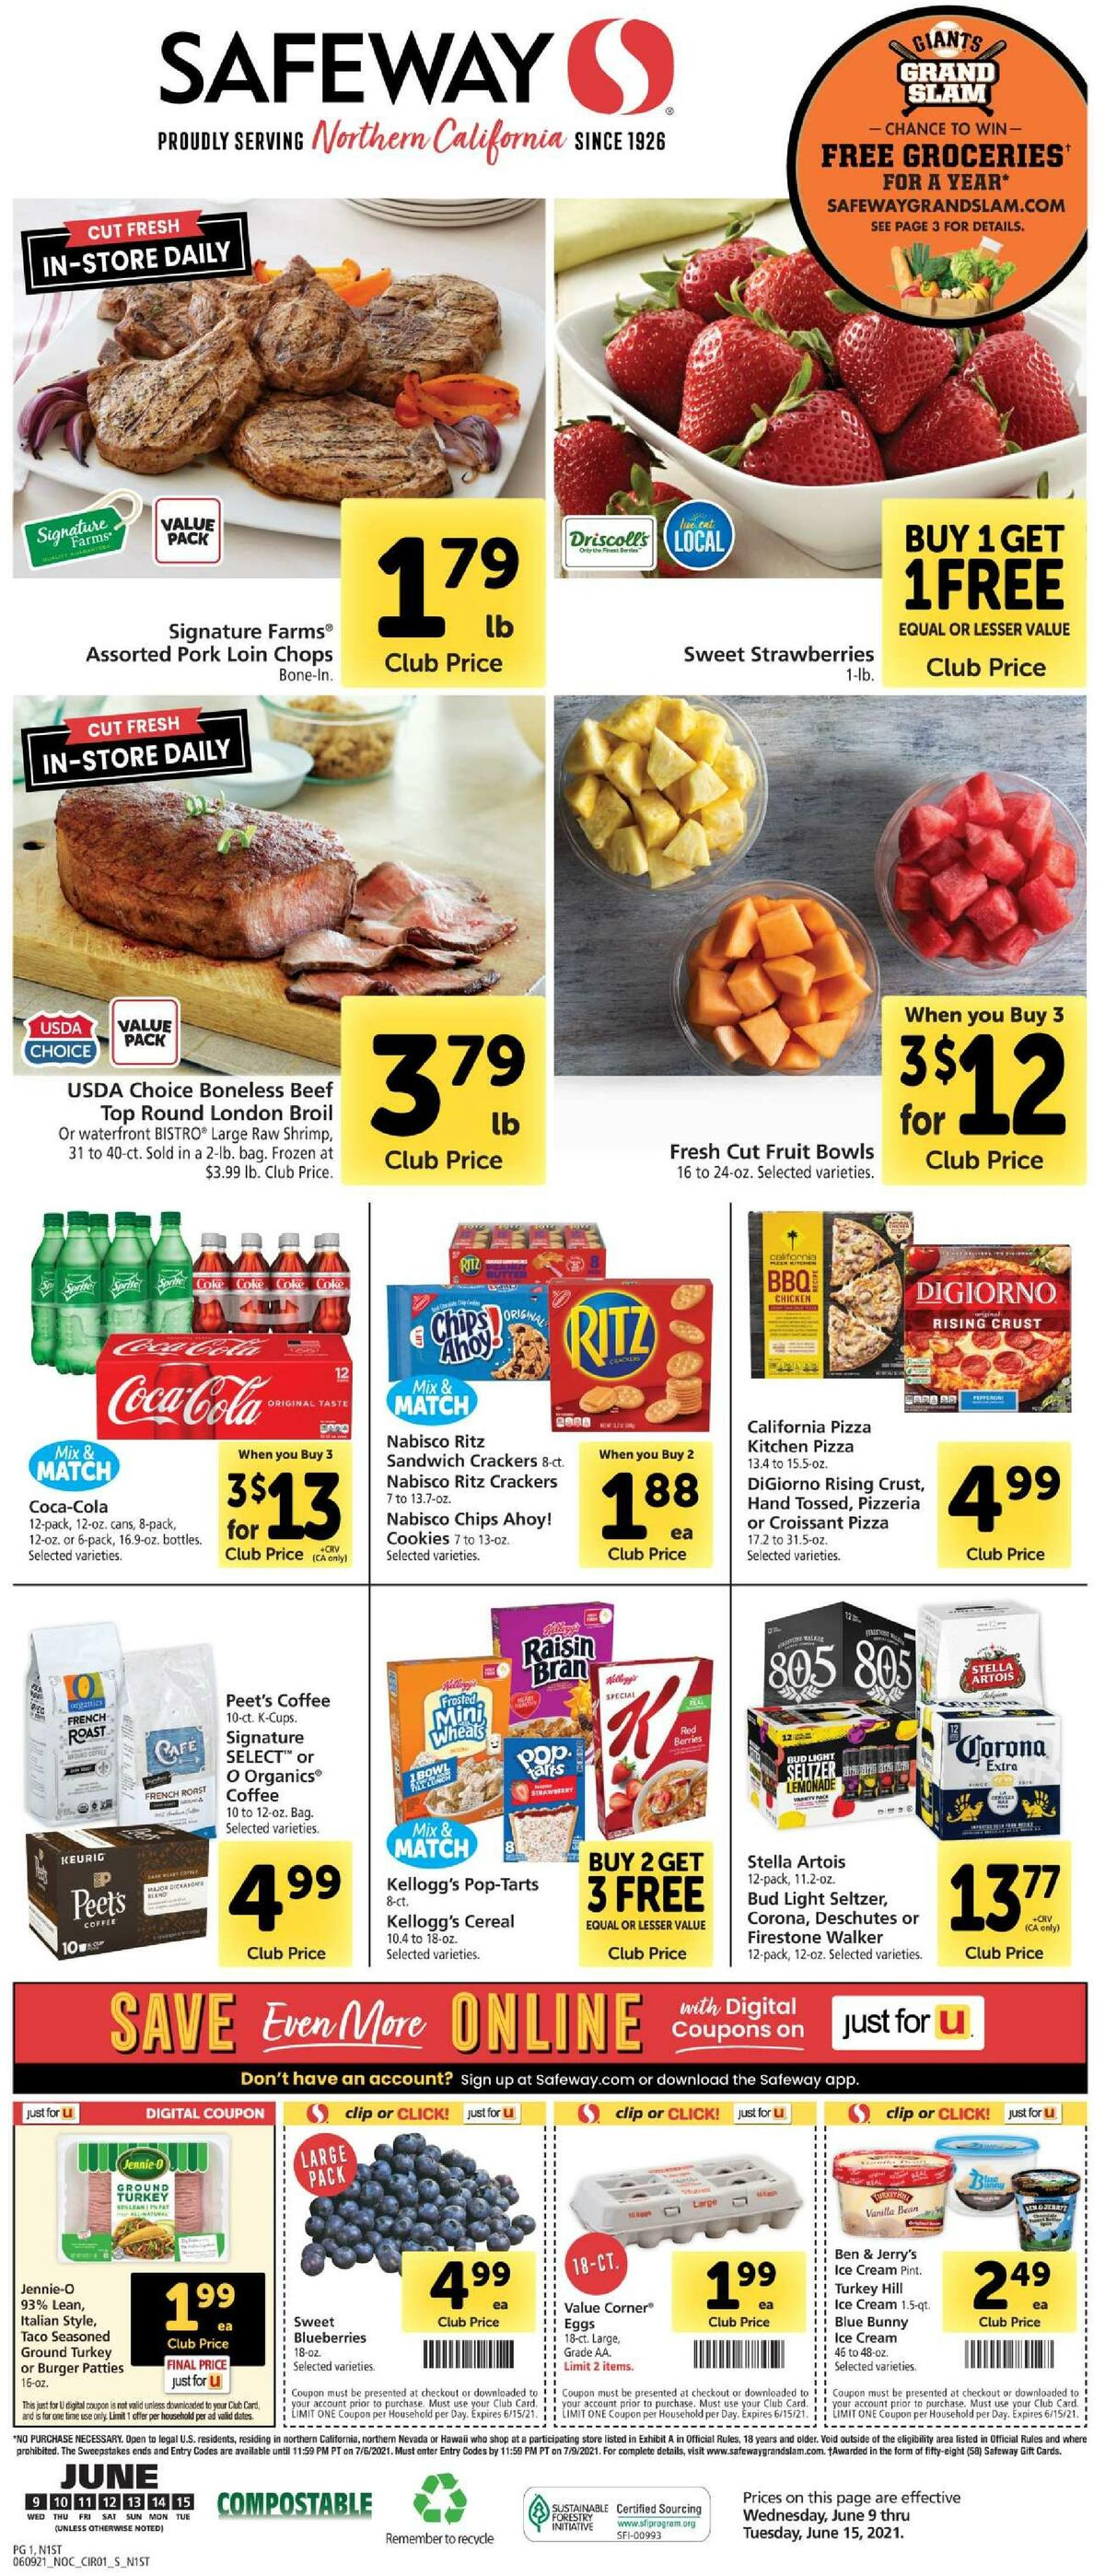 Safeway Weekly Ad from June 9